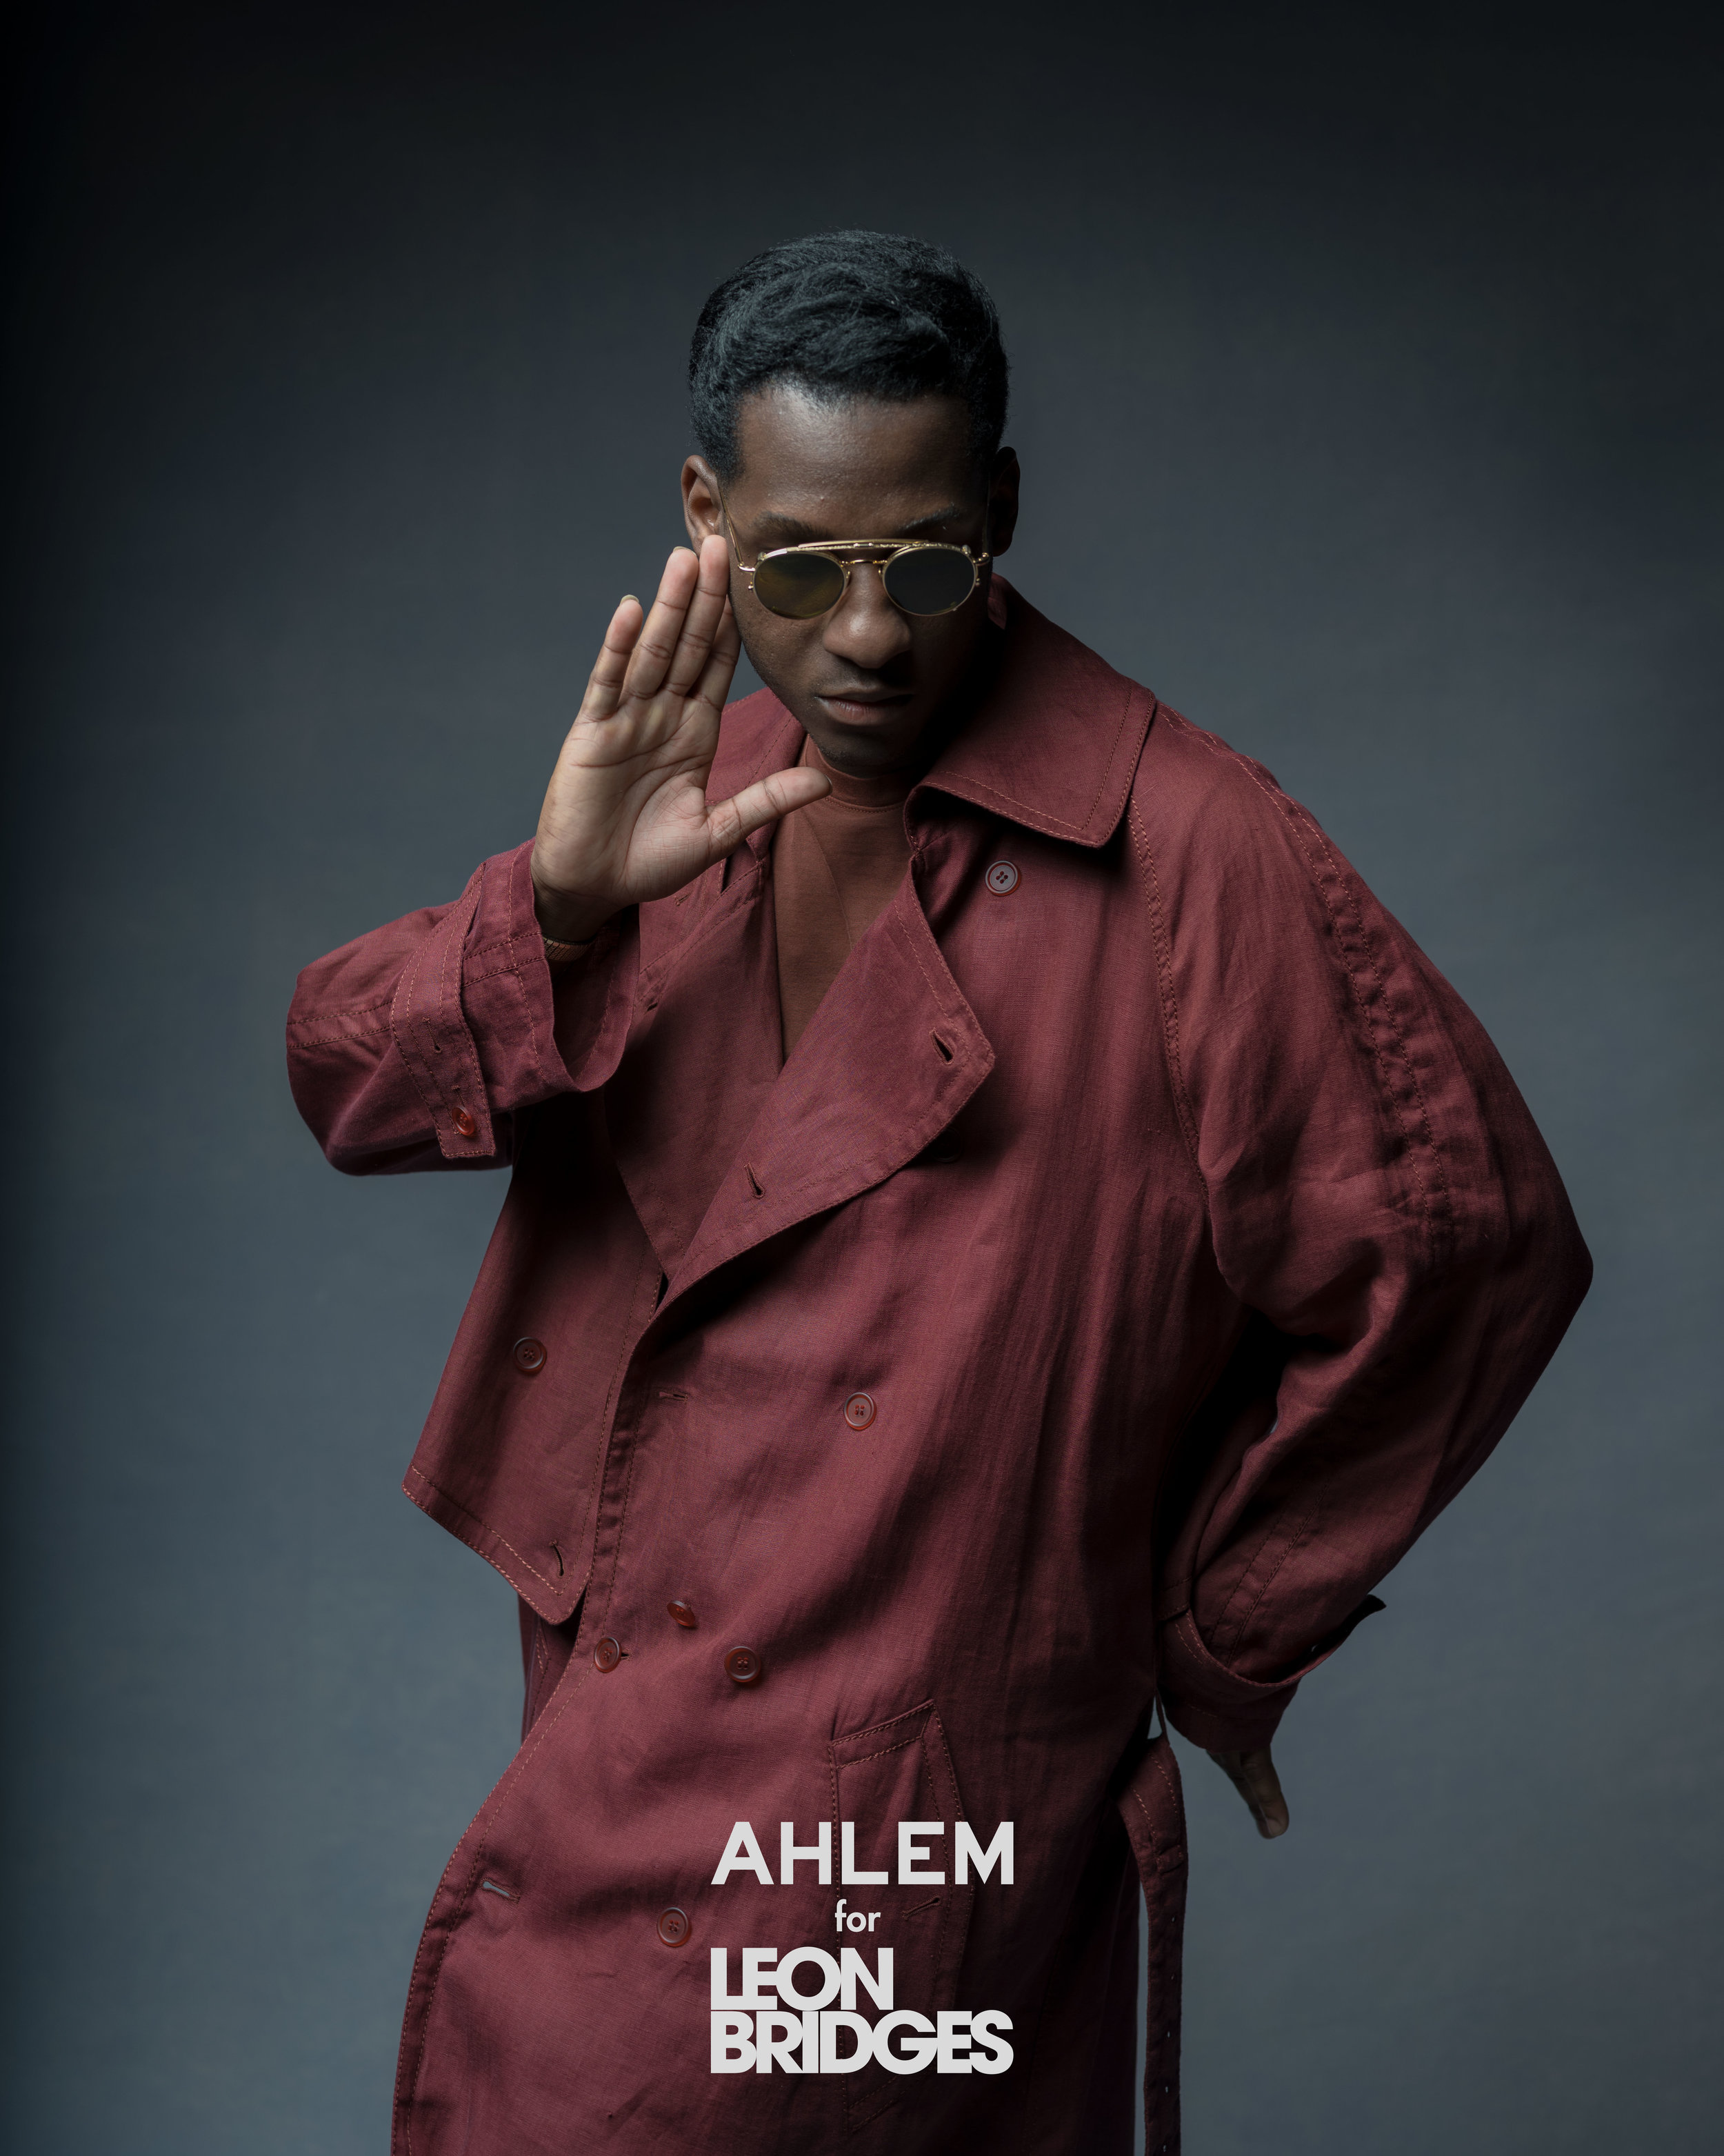 Leon Bridges - Ahlem Eyewear